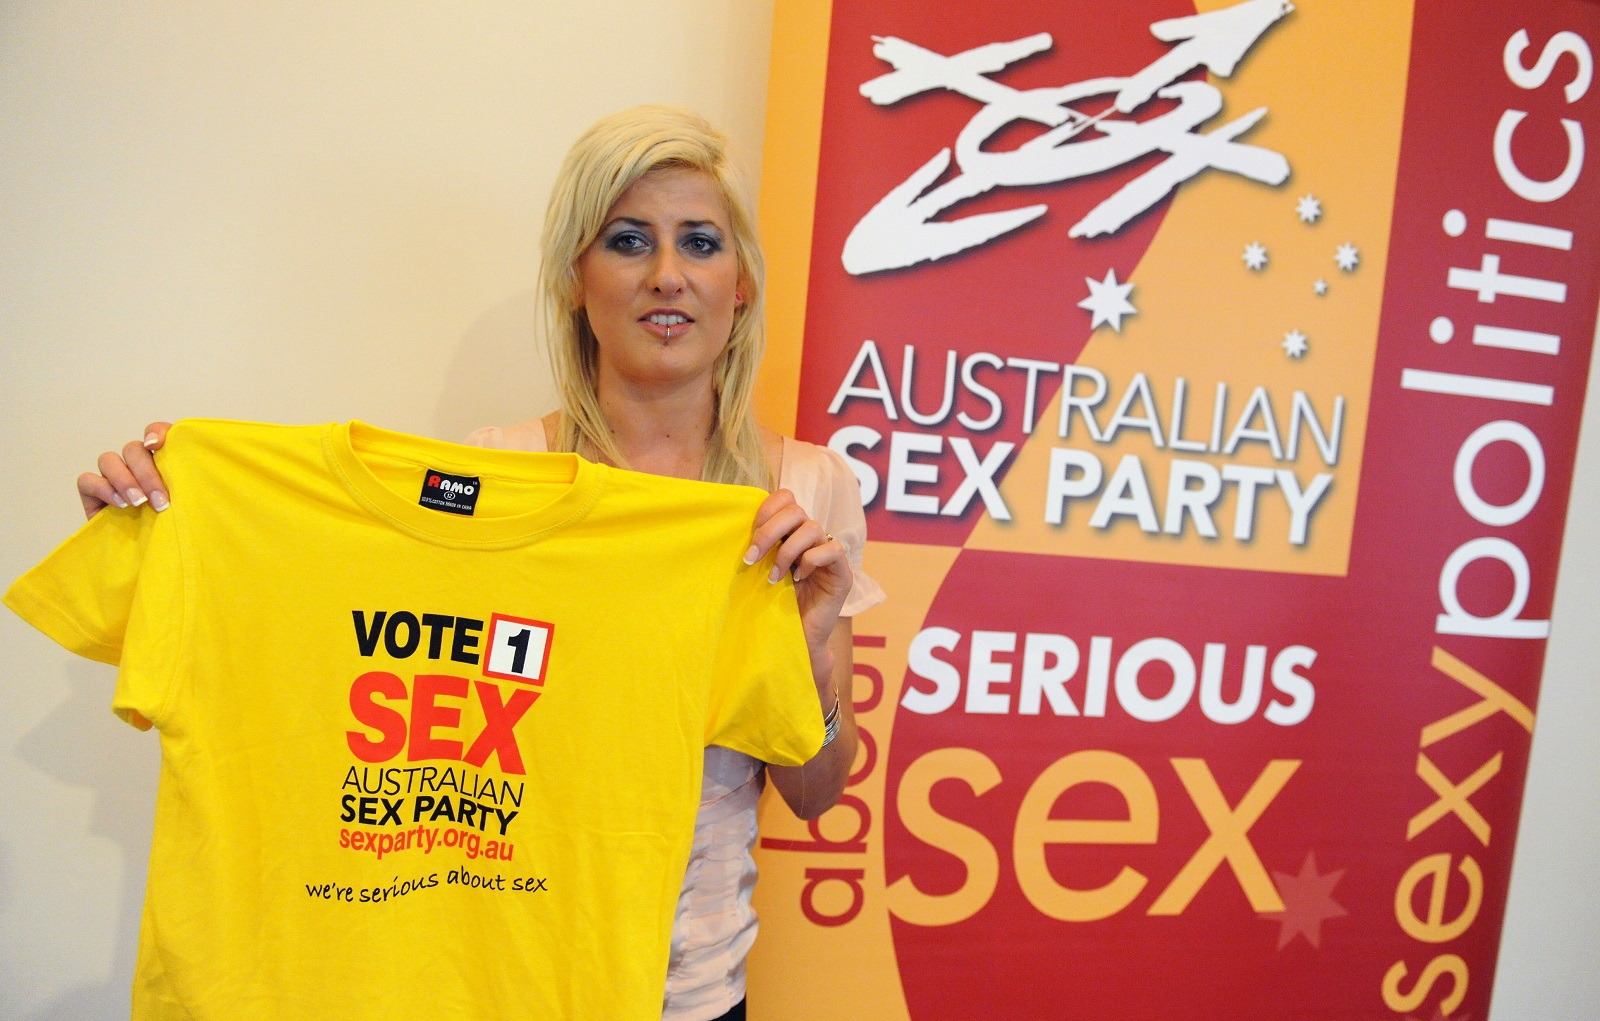 Australian sex party deregistered